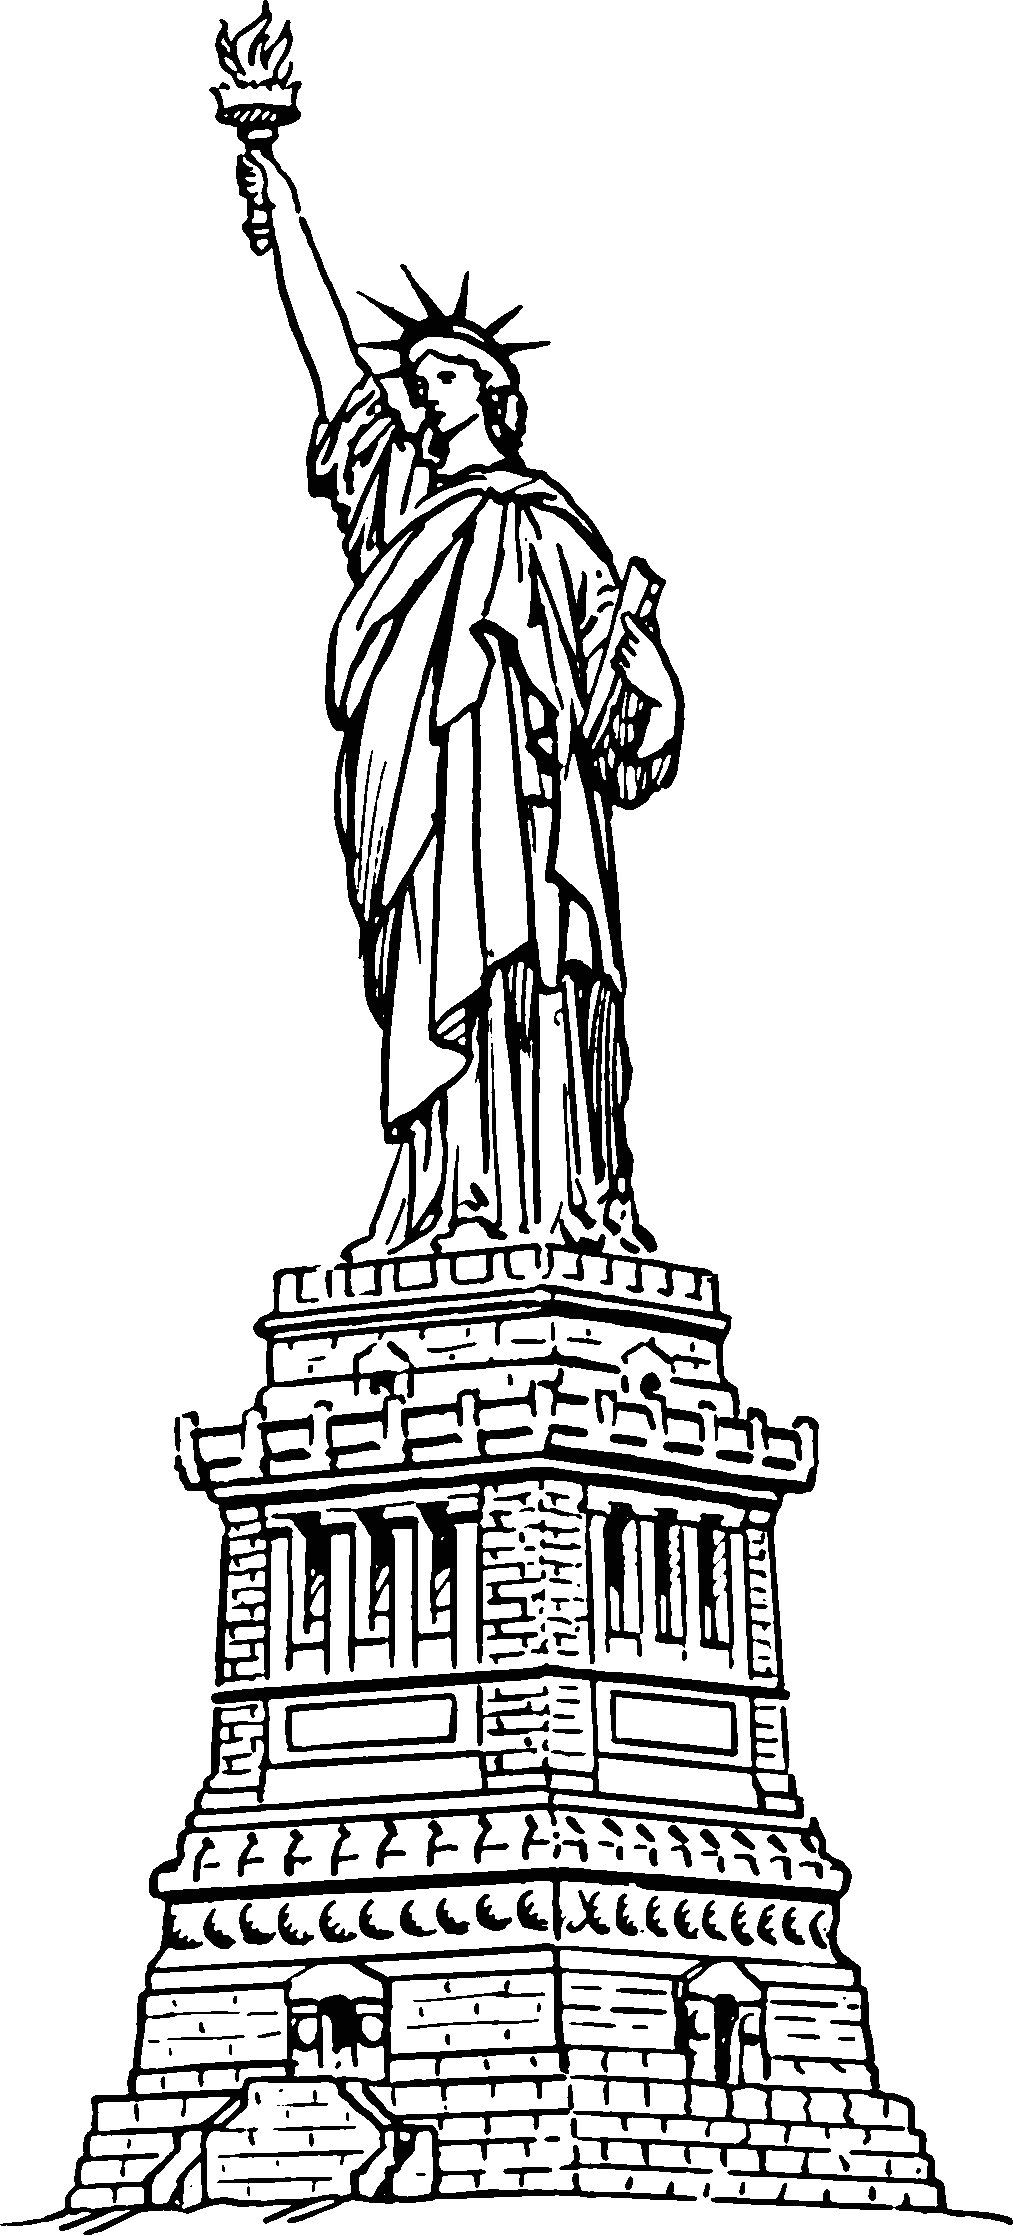 Statue Of Liberty Coloring Page for Kids Free Printable Statue Of Liberty Coloring Pages for Kids